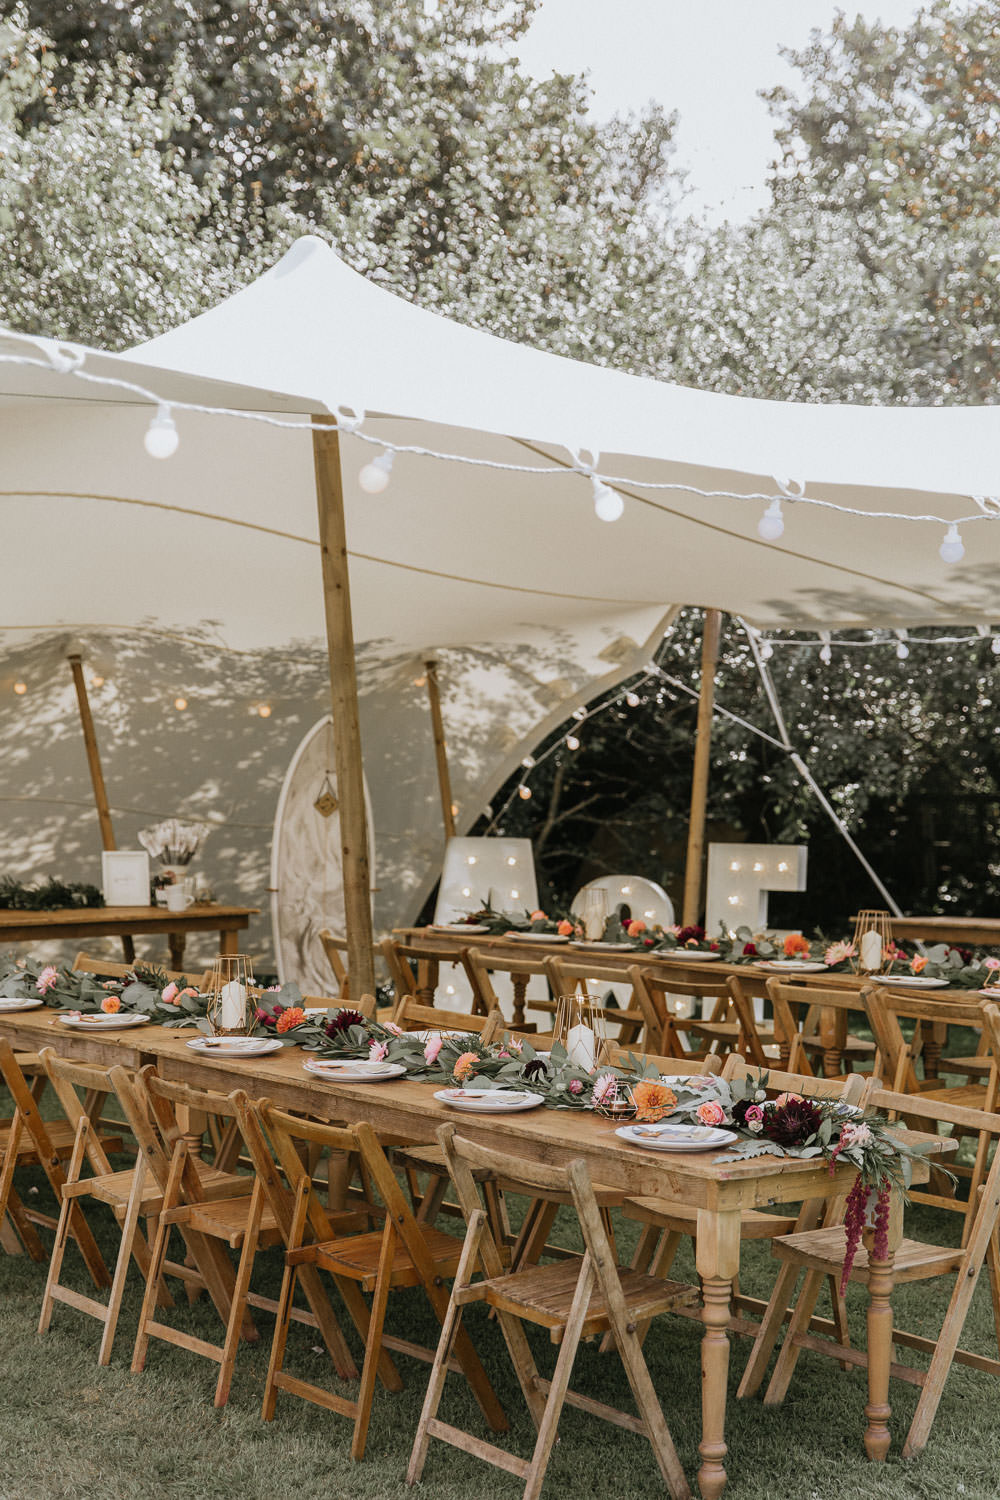 Stretch Tent Outdoor Festoon Lights Long Wooden Antique Tables Chairs Summer Boho Wedding Wild Tide Weddings